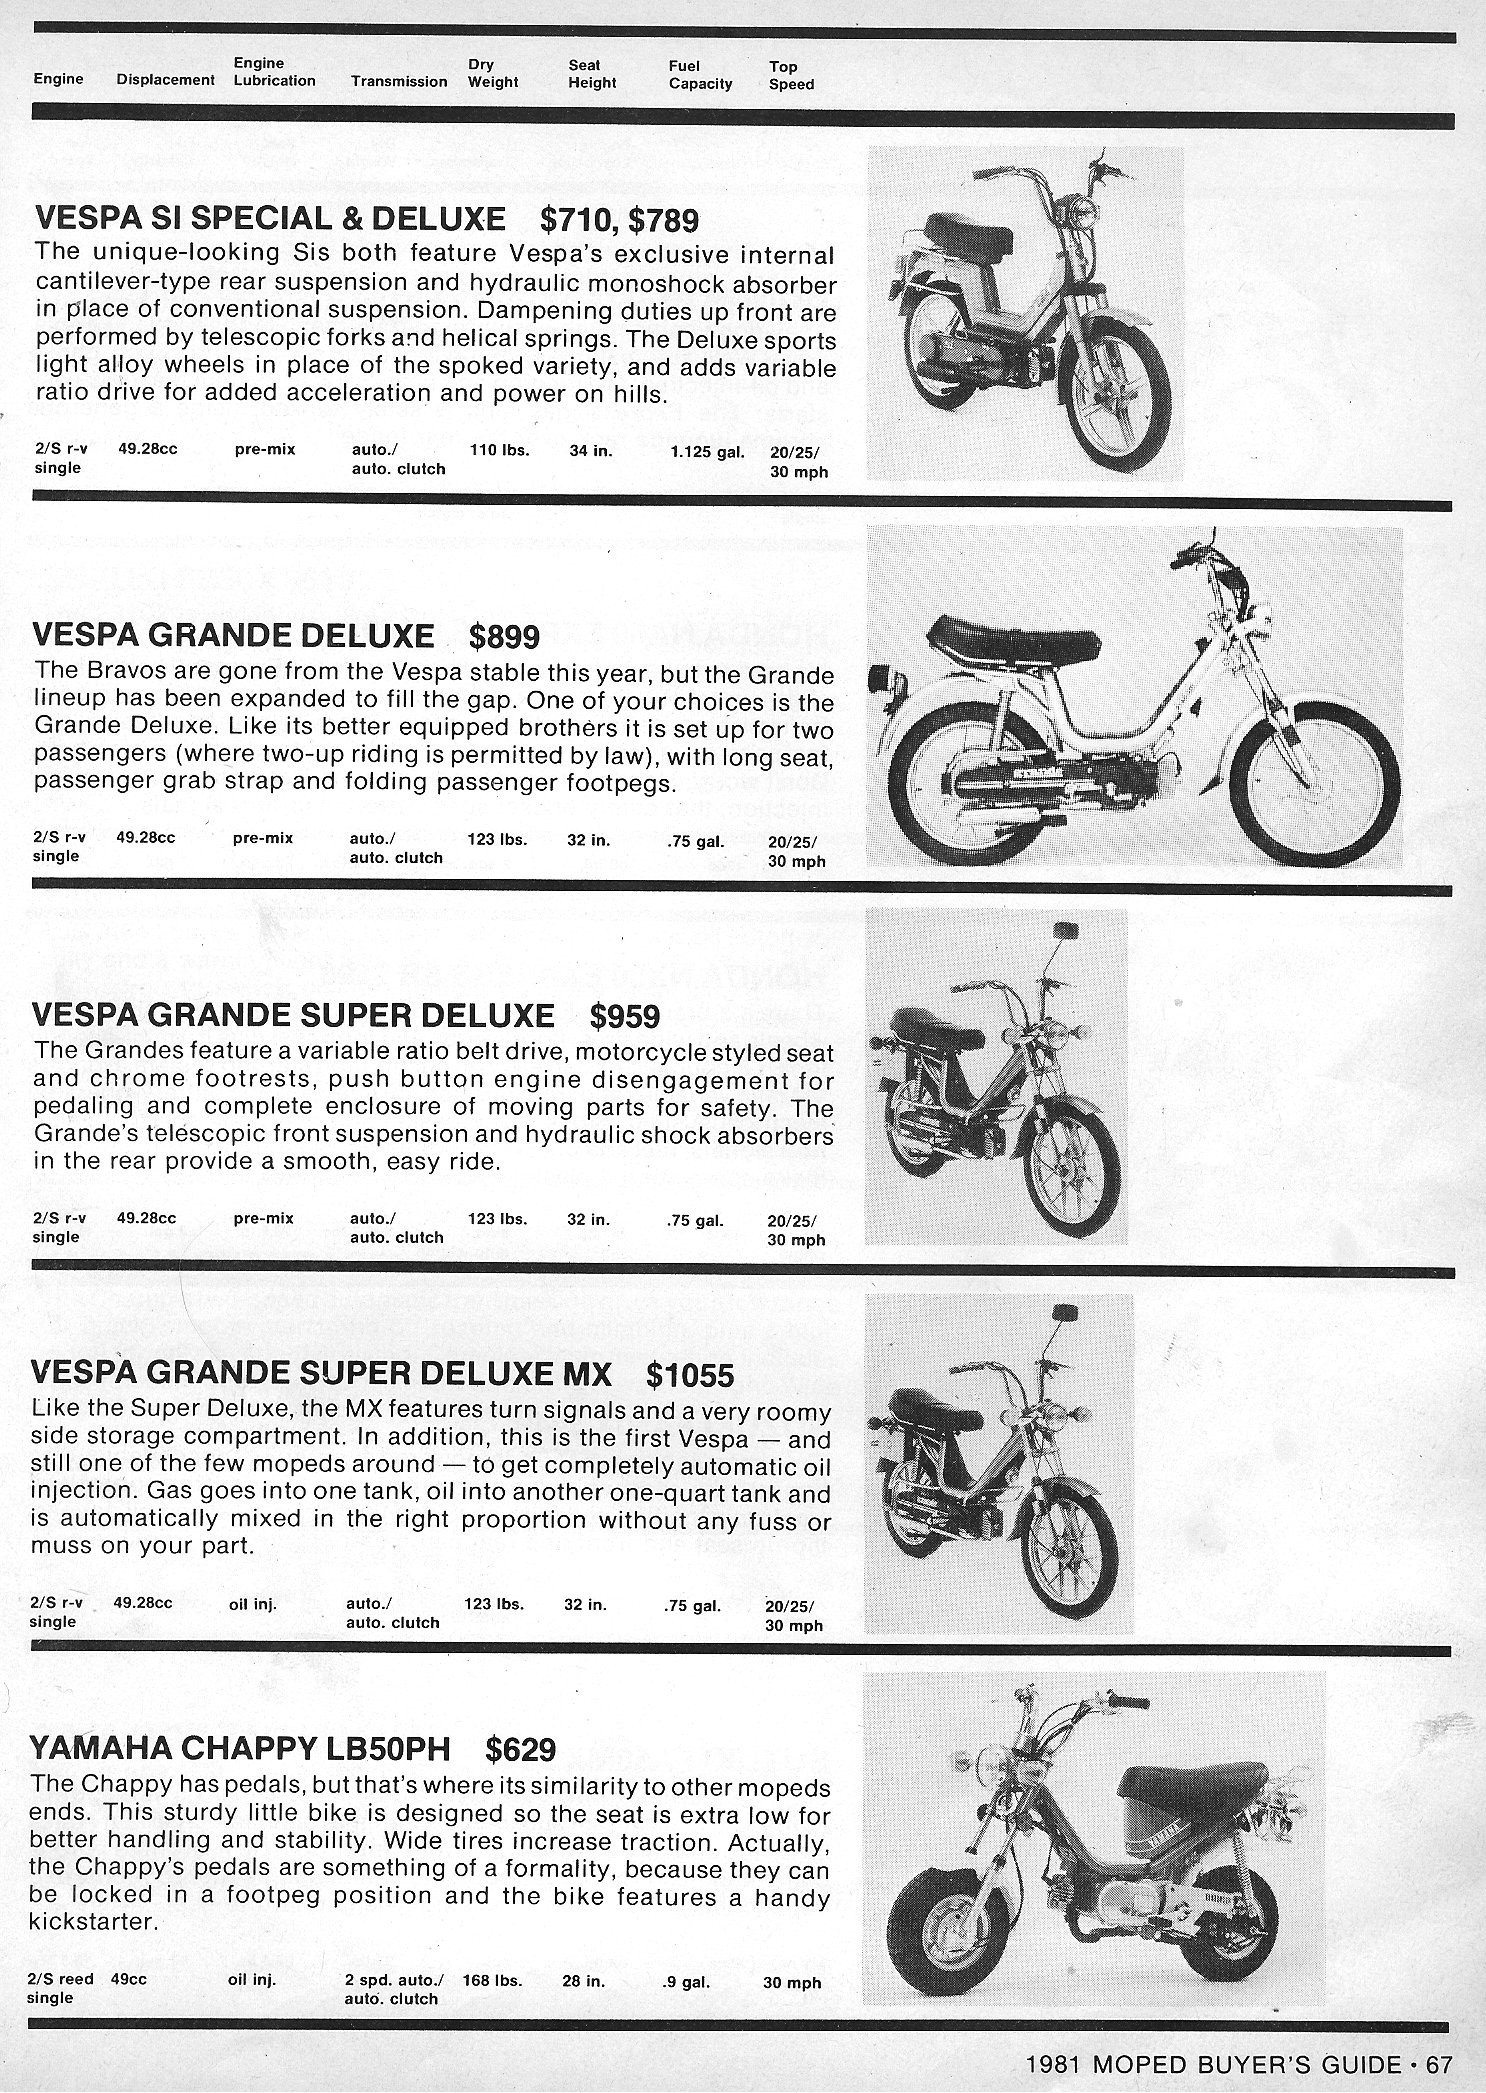 buyers guide acirc myrons mopeds 1981 guide p67